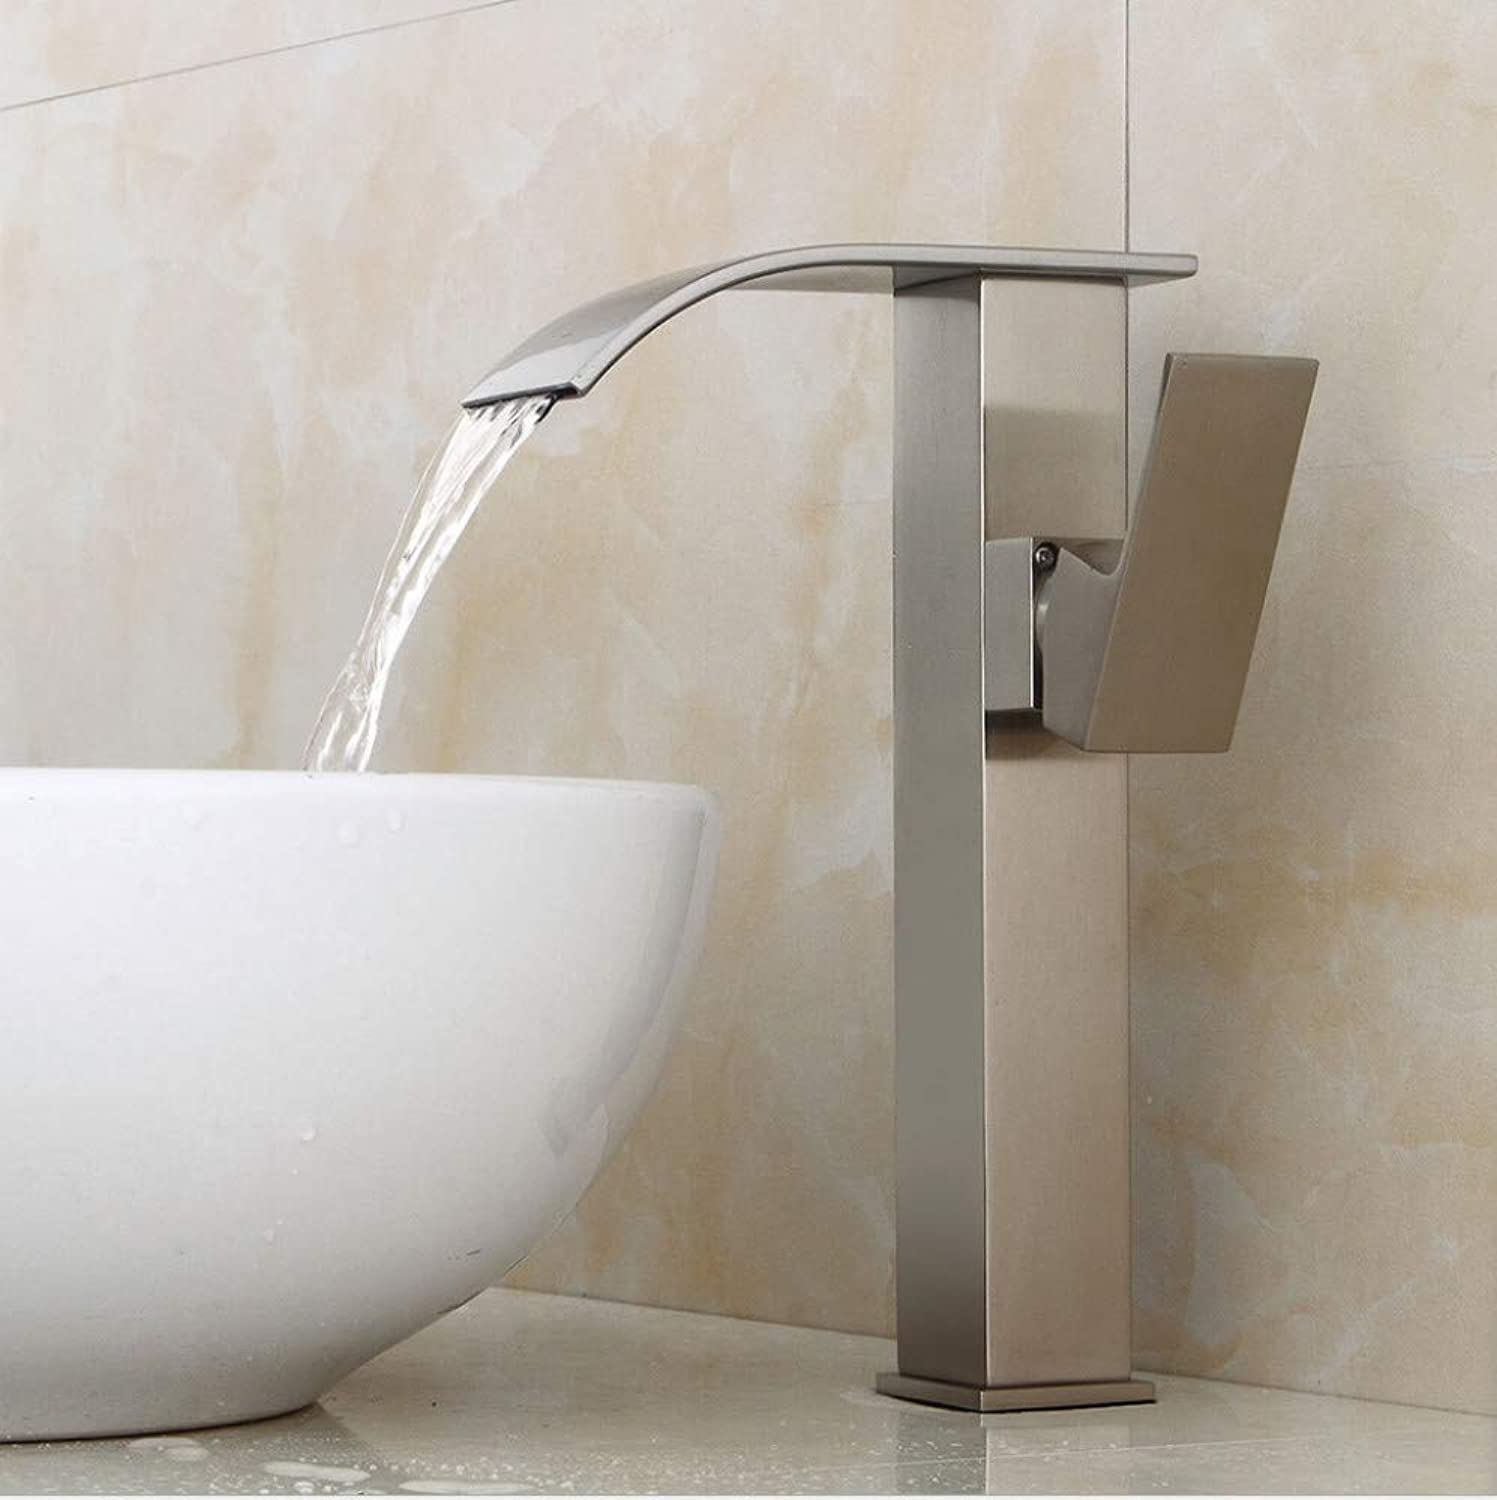 Faucet Brushed Lavatory Faucet European Above Counter Basin Height Faucet Waterfall hot and Cold Faucet Bathroom Copper Faucet